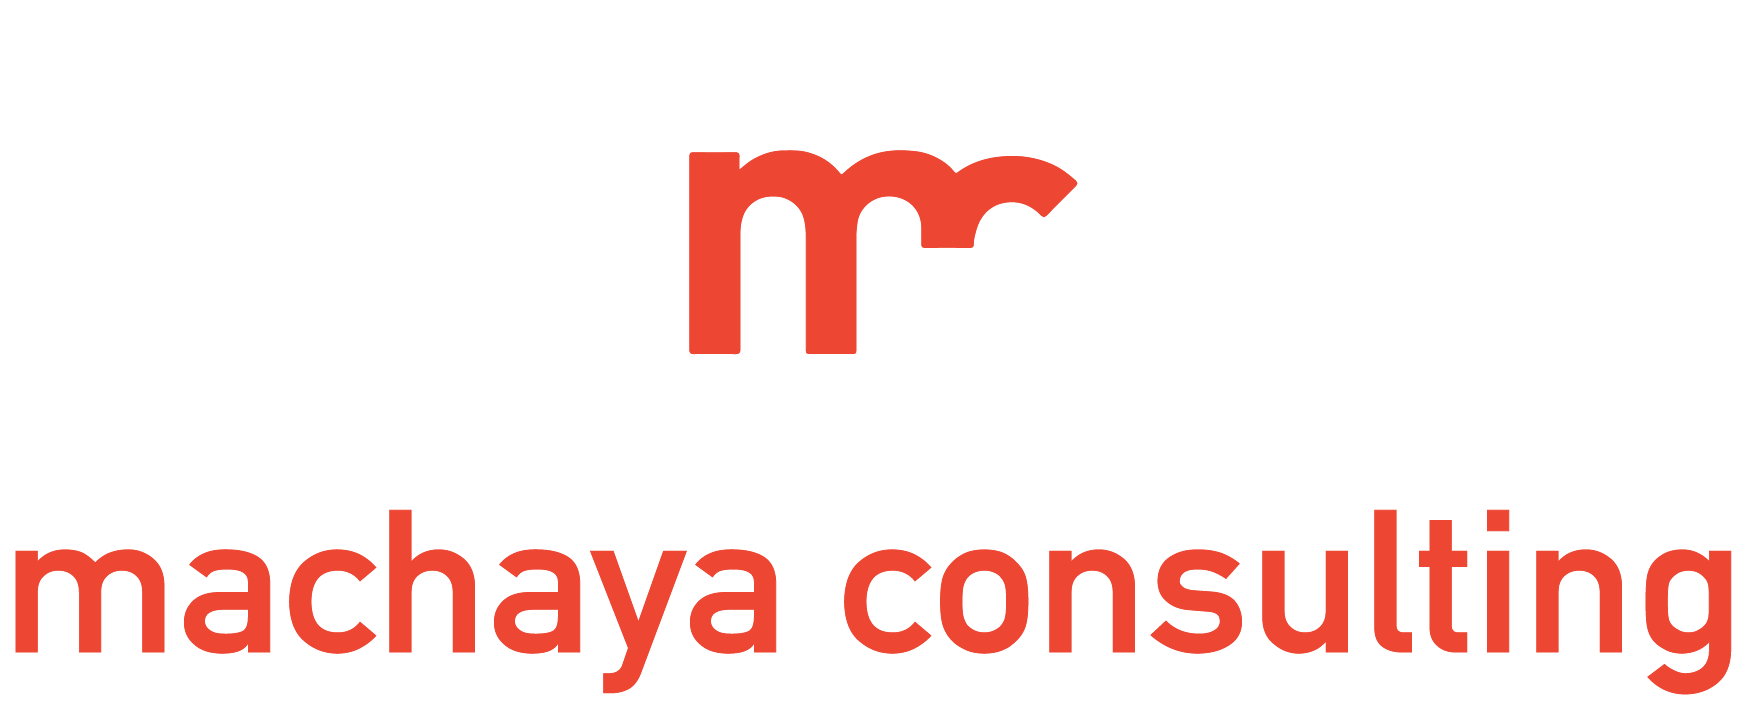 Machaya Consulting